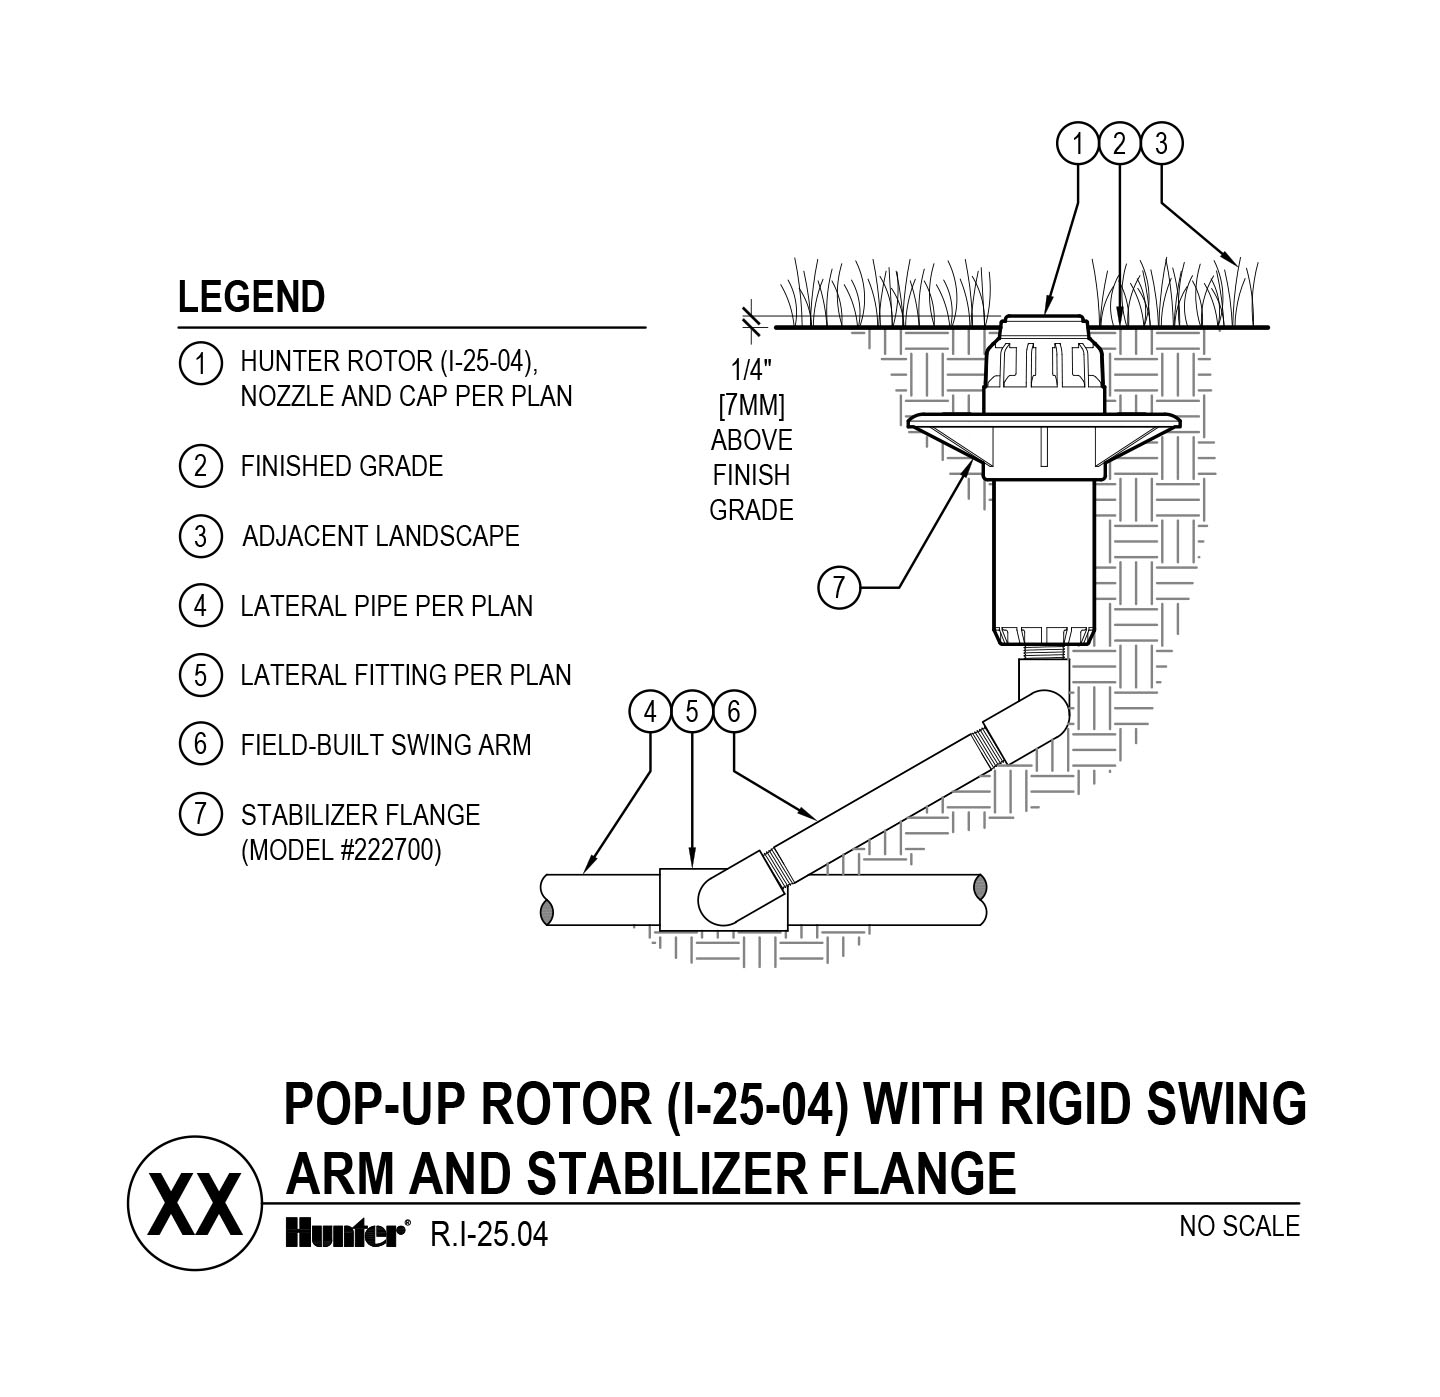 CAD - I-25-04 with swing arm and stabilizer flange